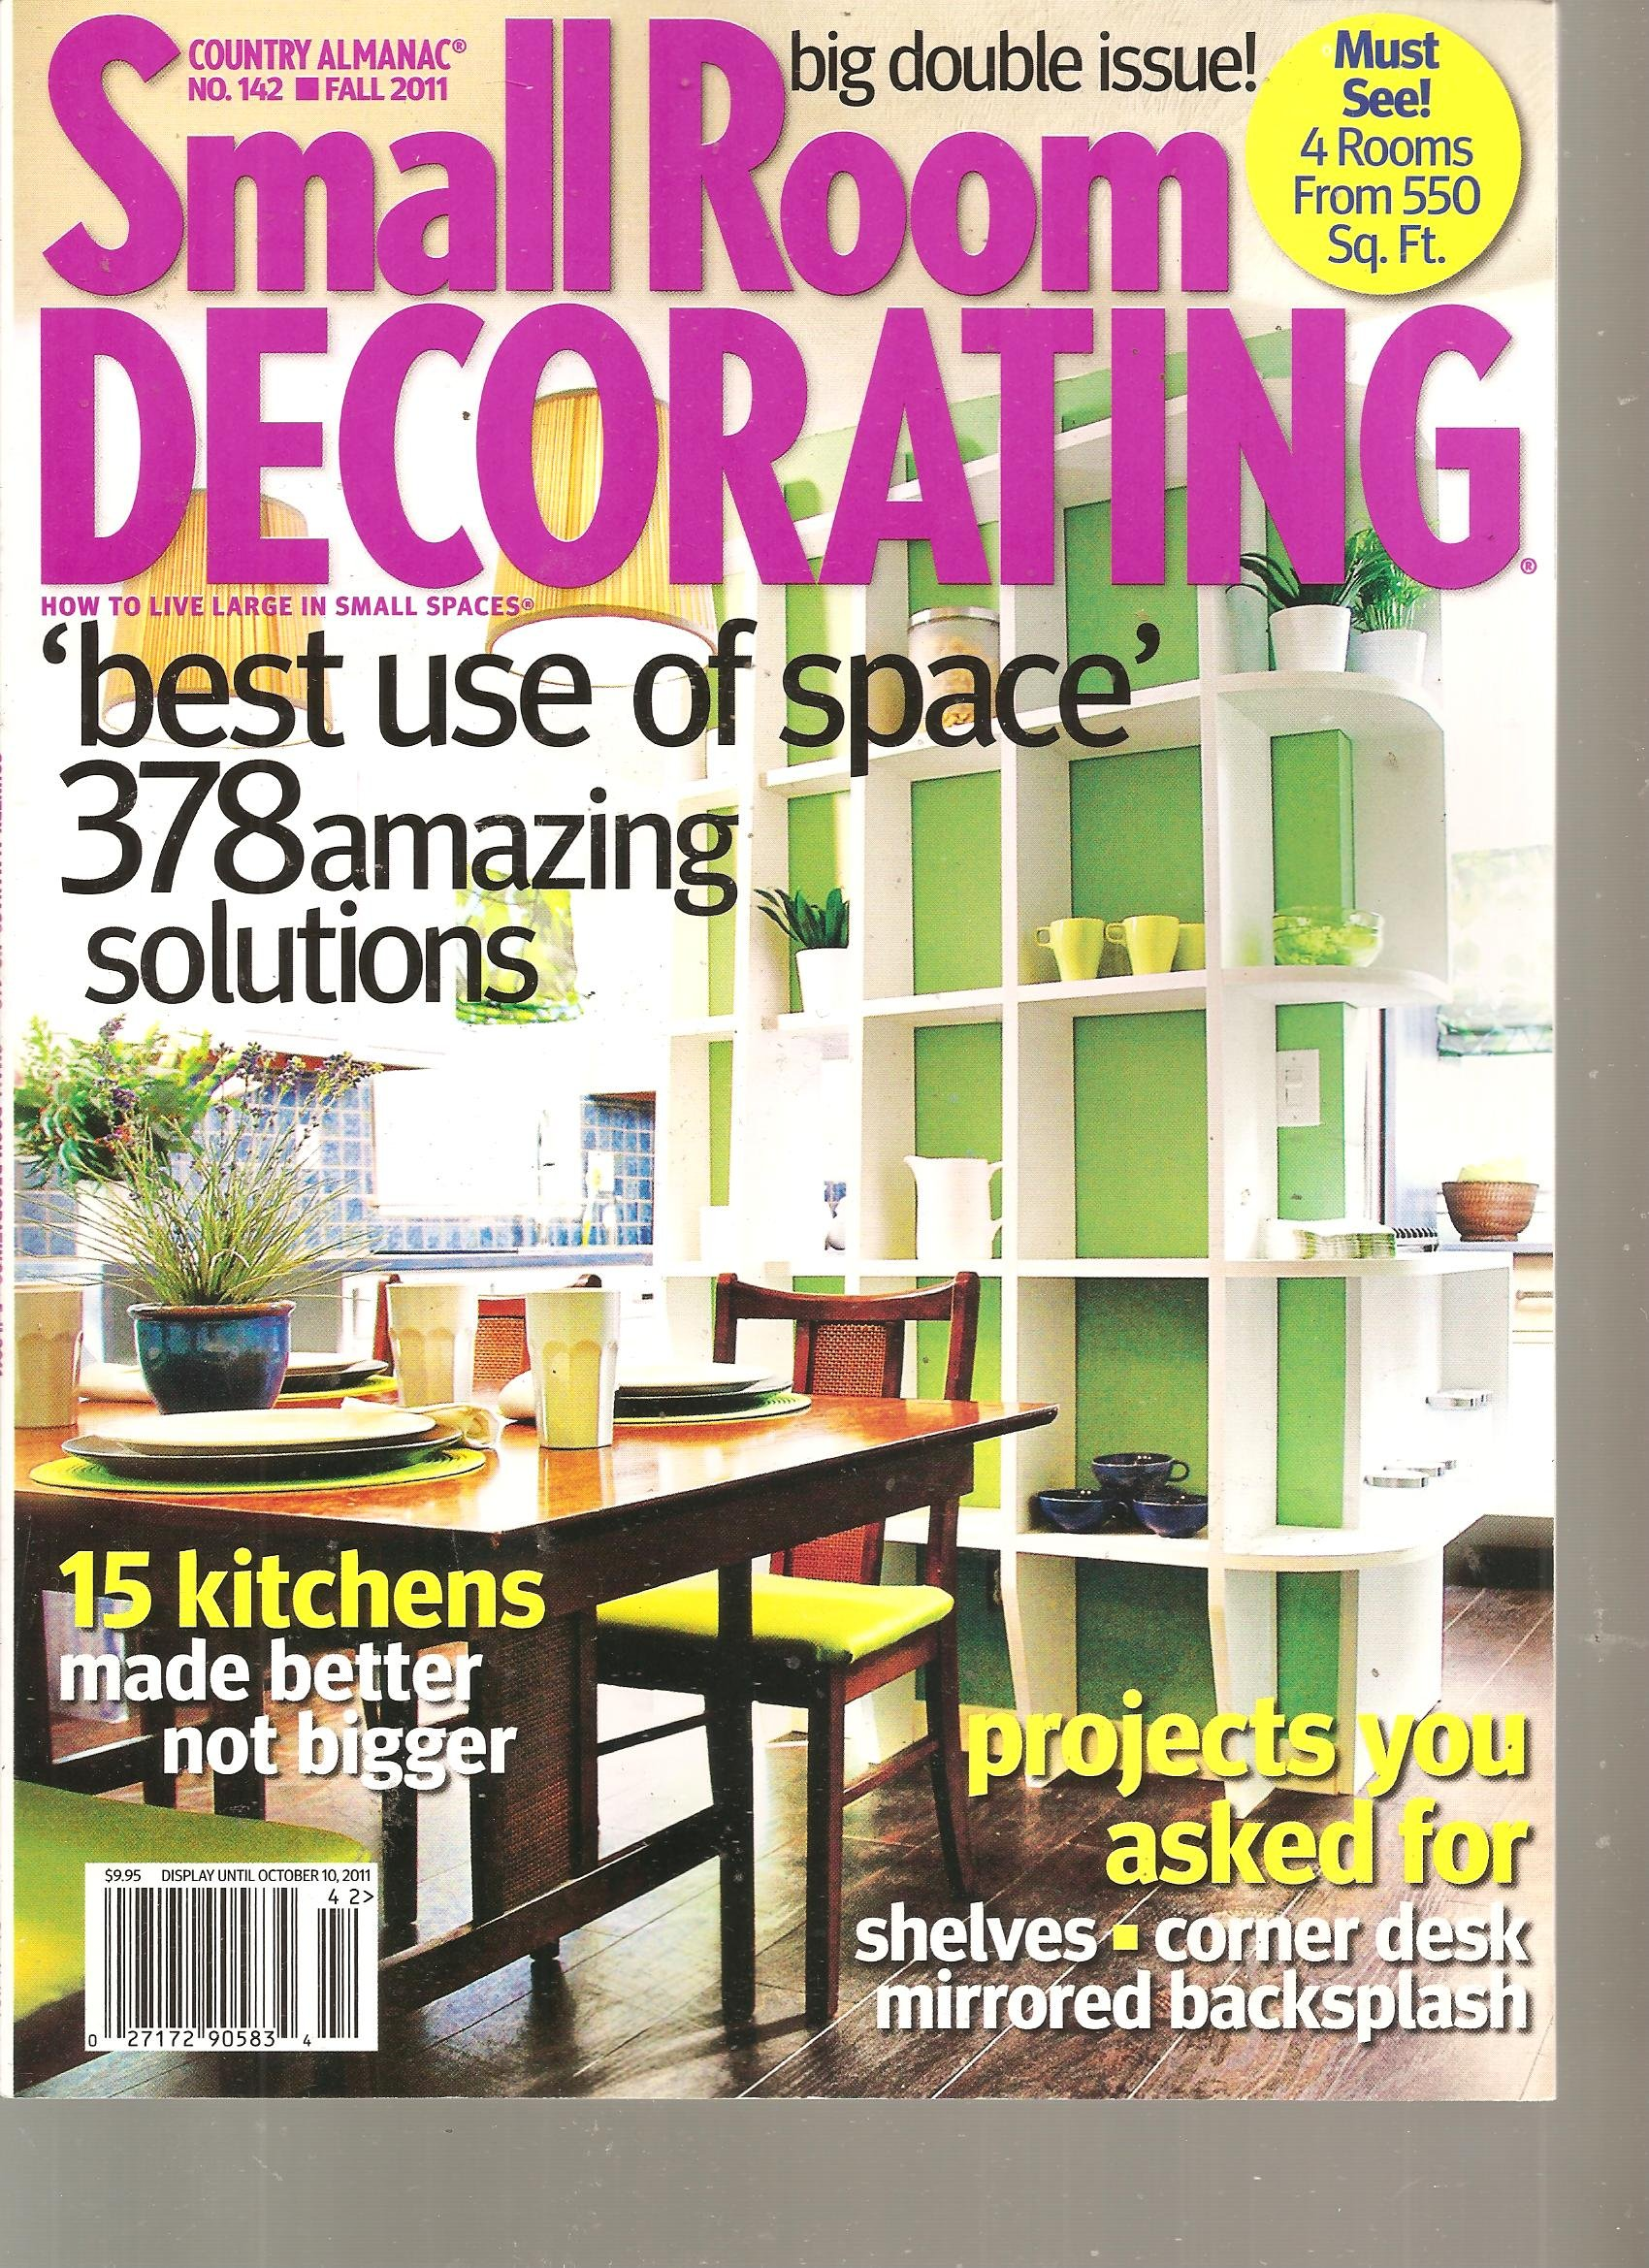 Country Almanac Small Room Decorating Magazine (Best Use of ...